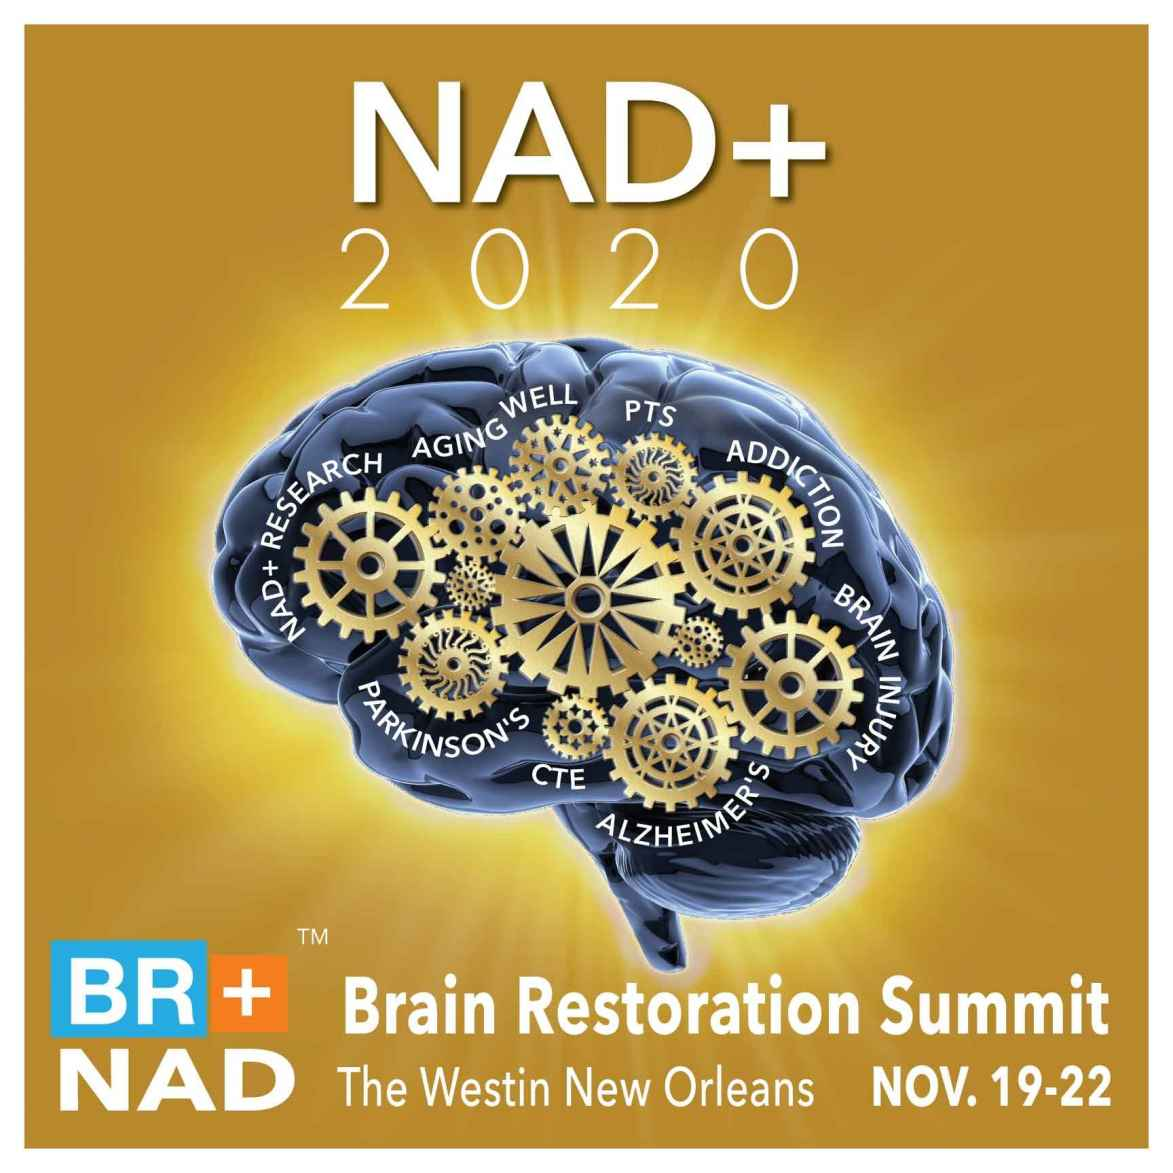 2020 NAD+ Brain Restoration Summit Logo